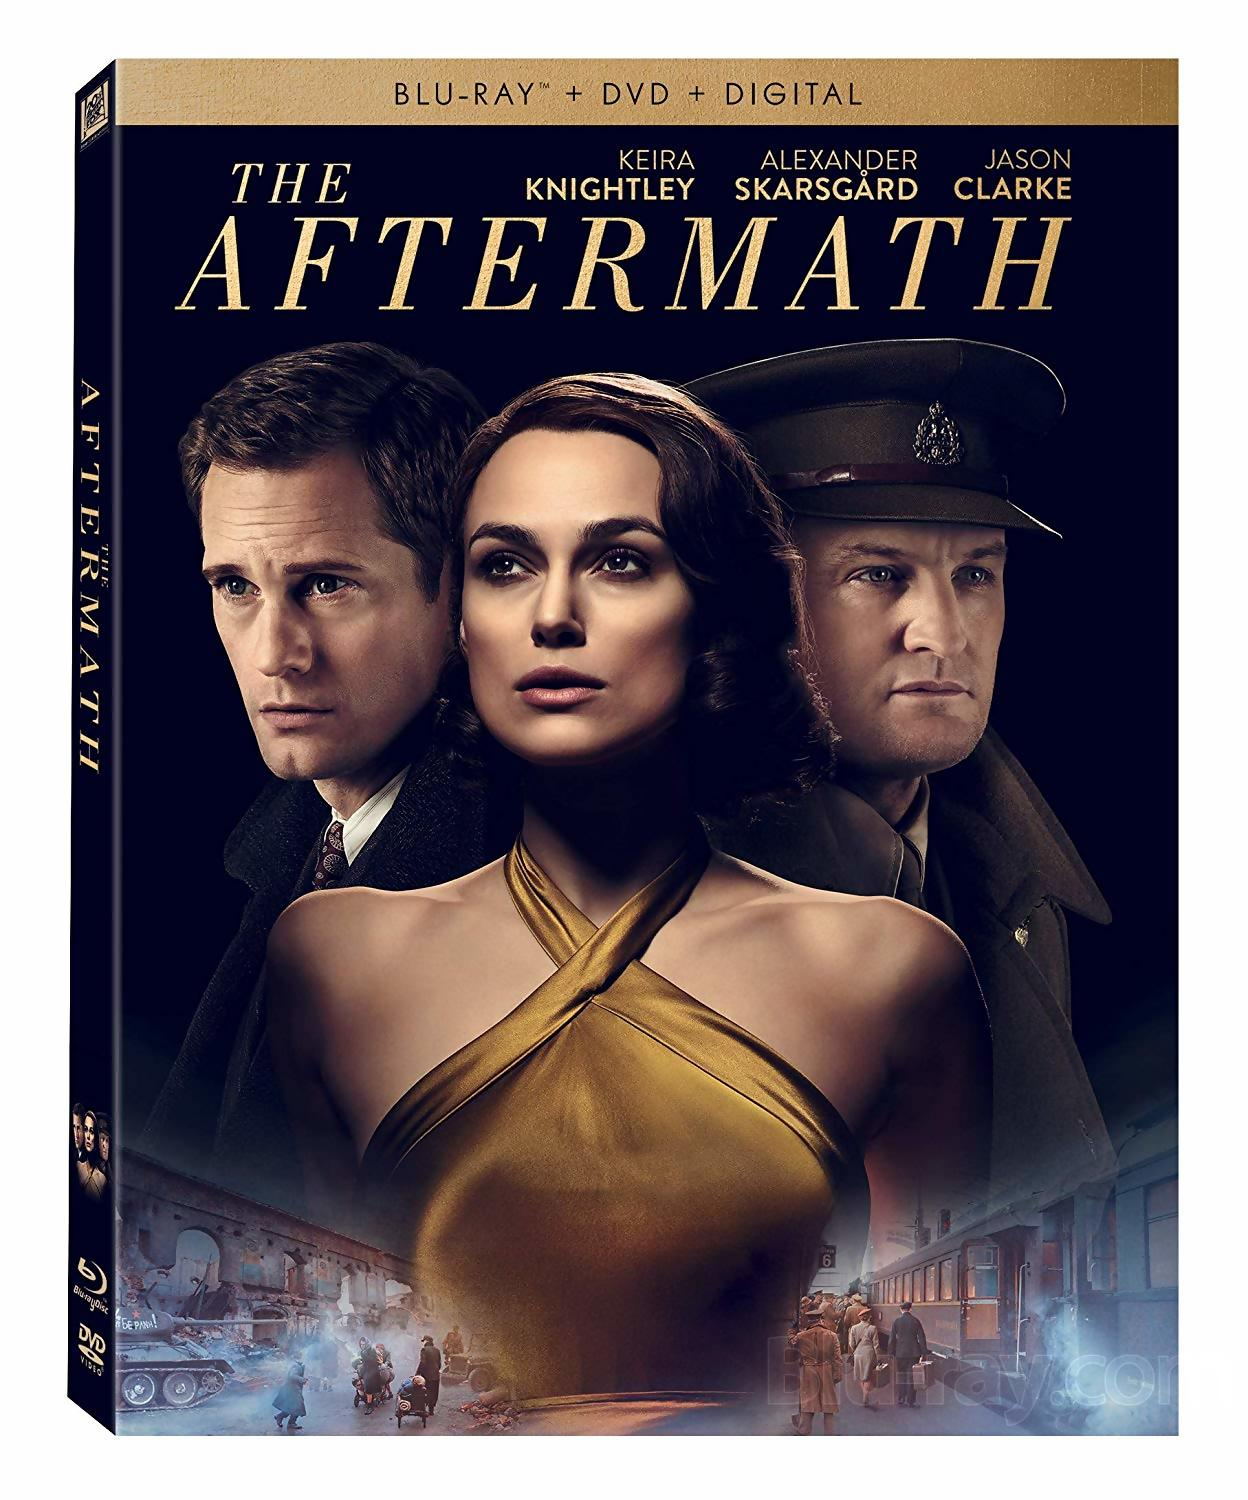 The Aftermath Blu-ray